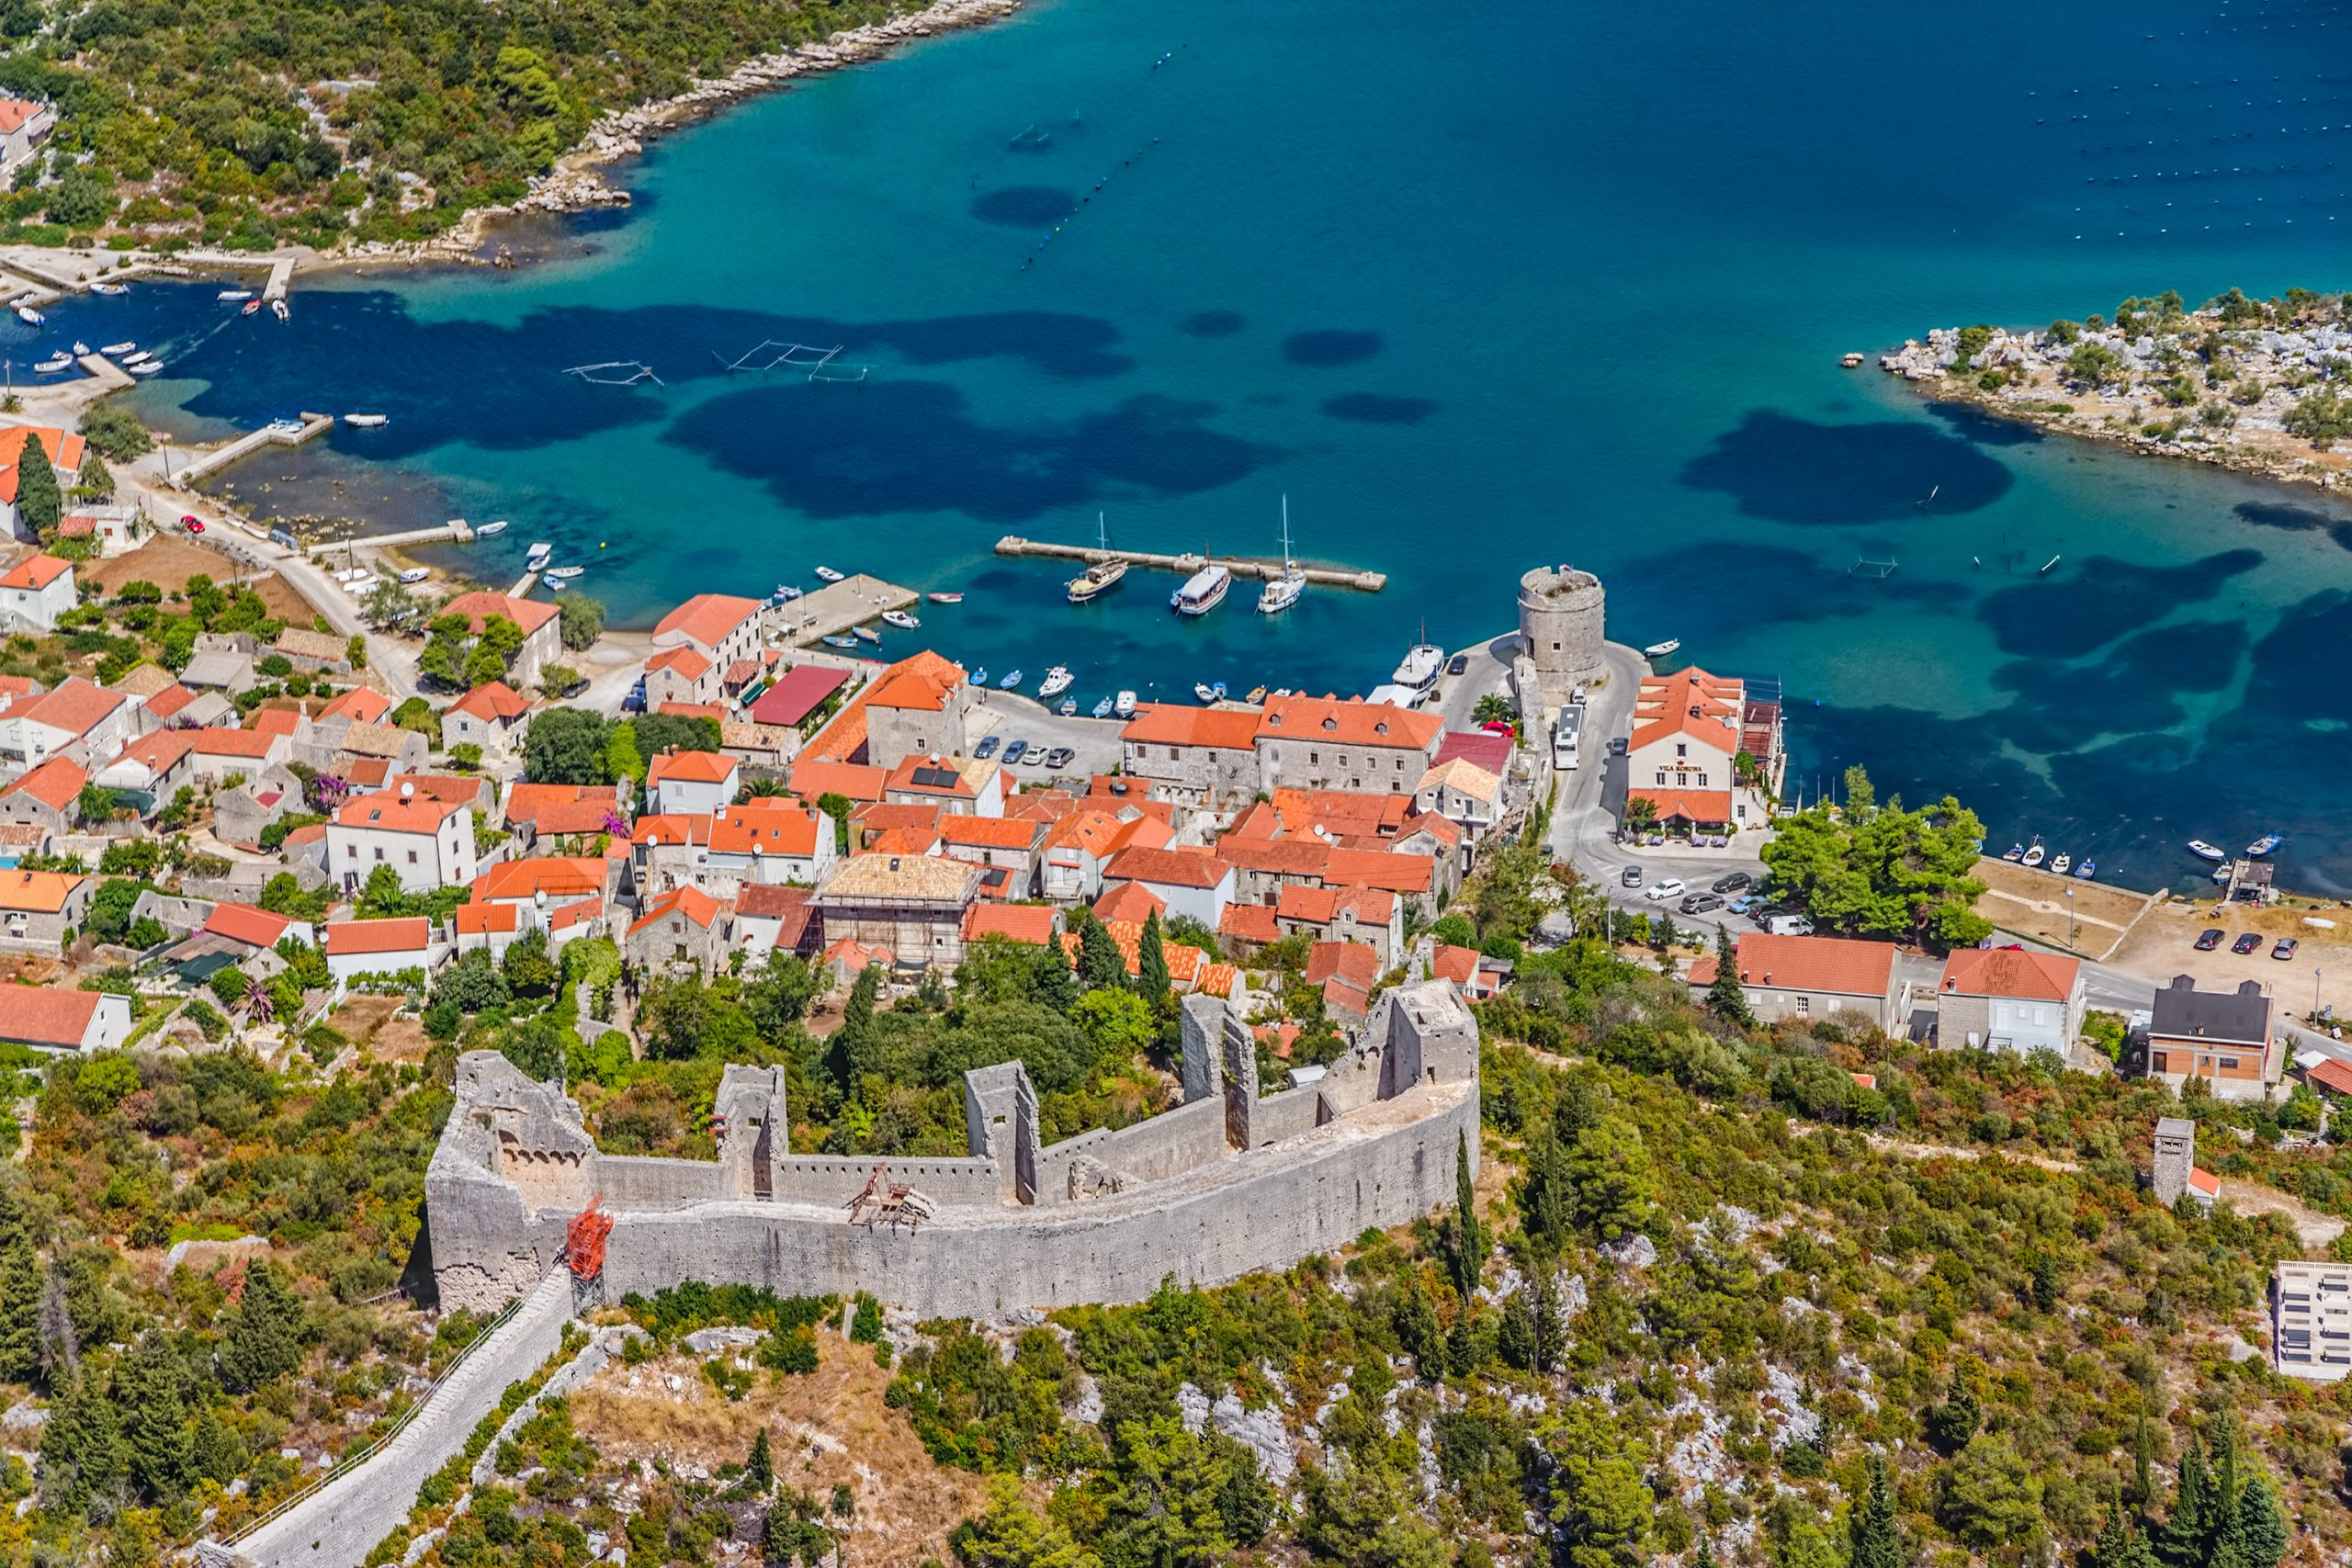 Discover The Longest Stone City Wall In Europe On The Wine And Oyster Tasting Experience At The Pelješac Peninsula